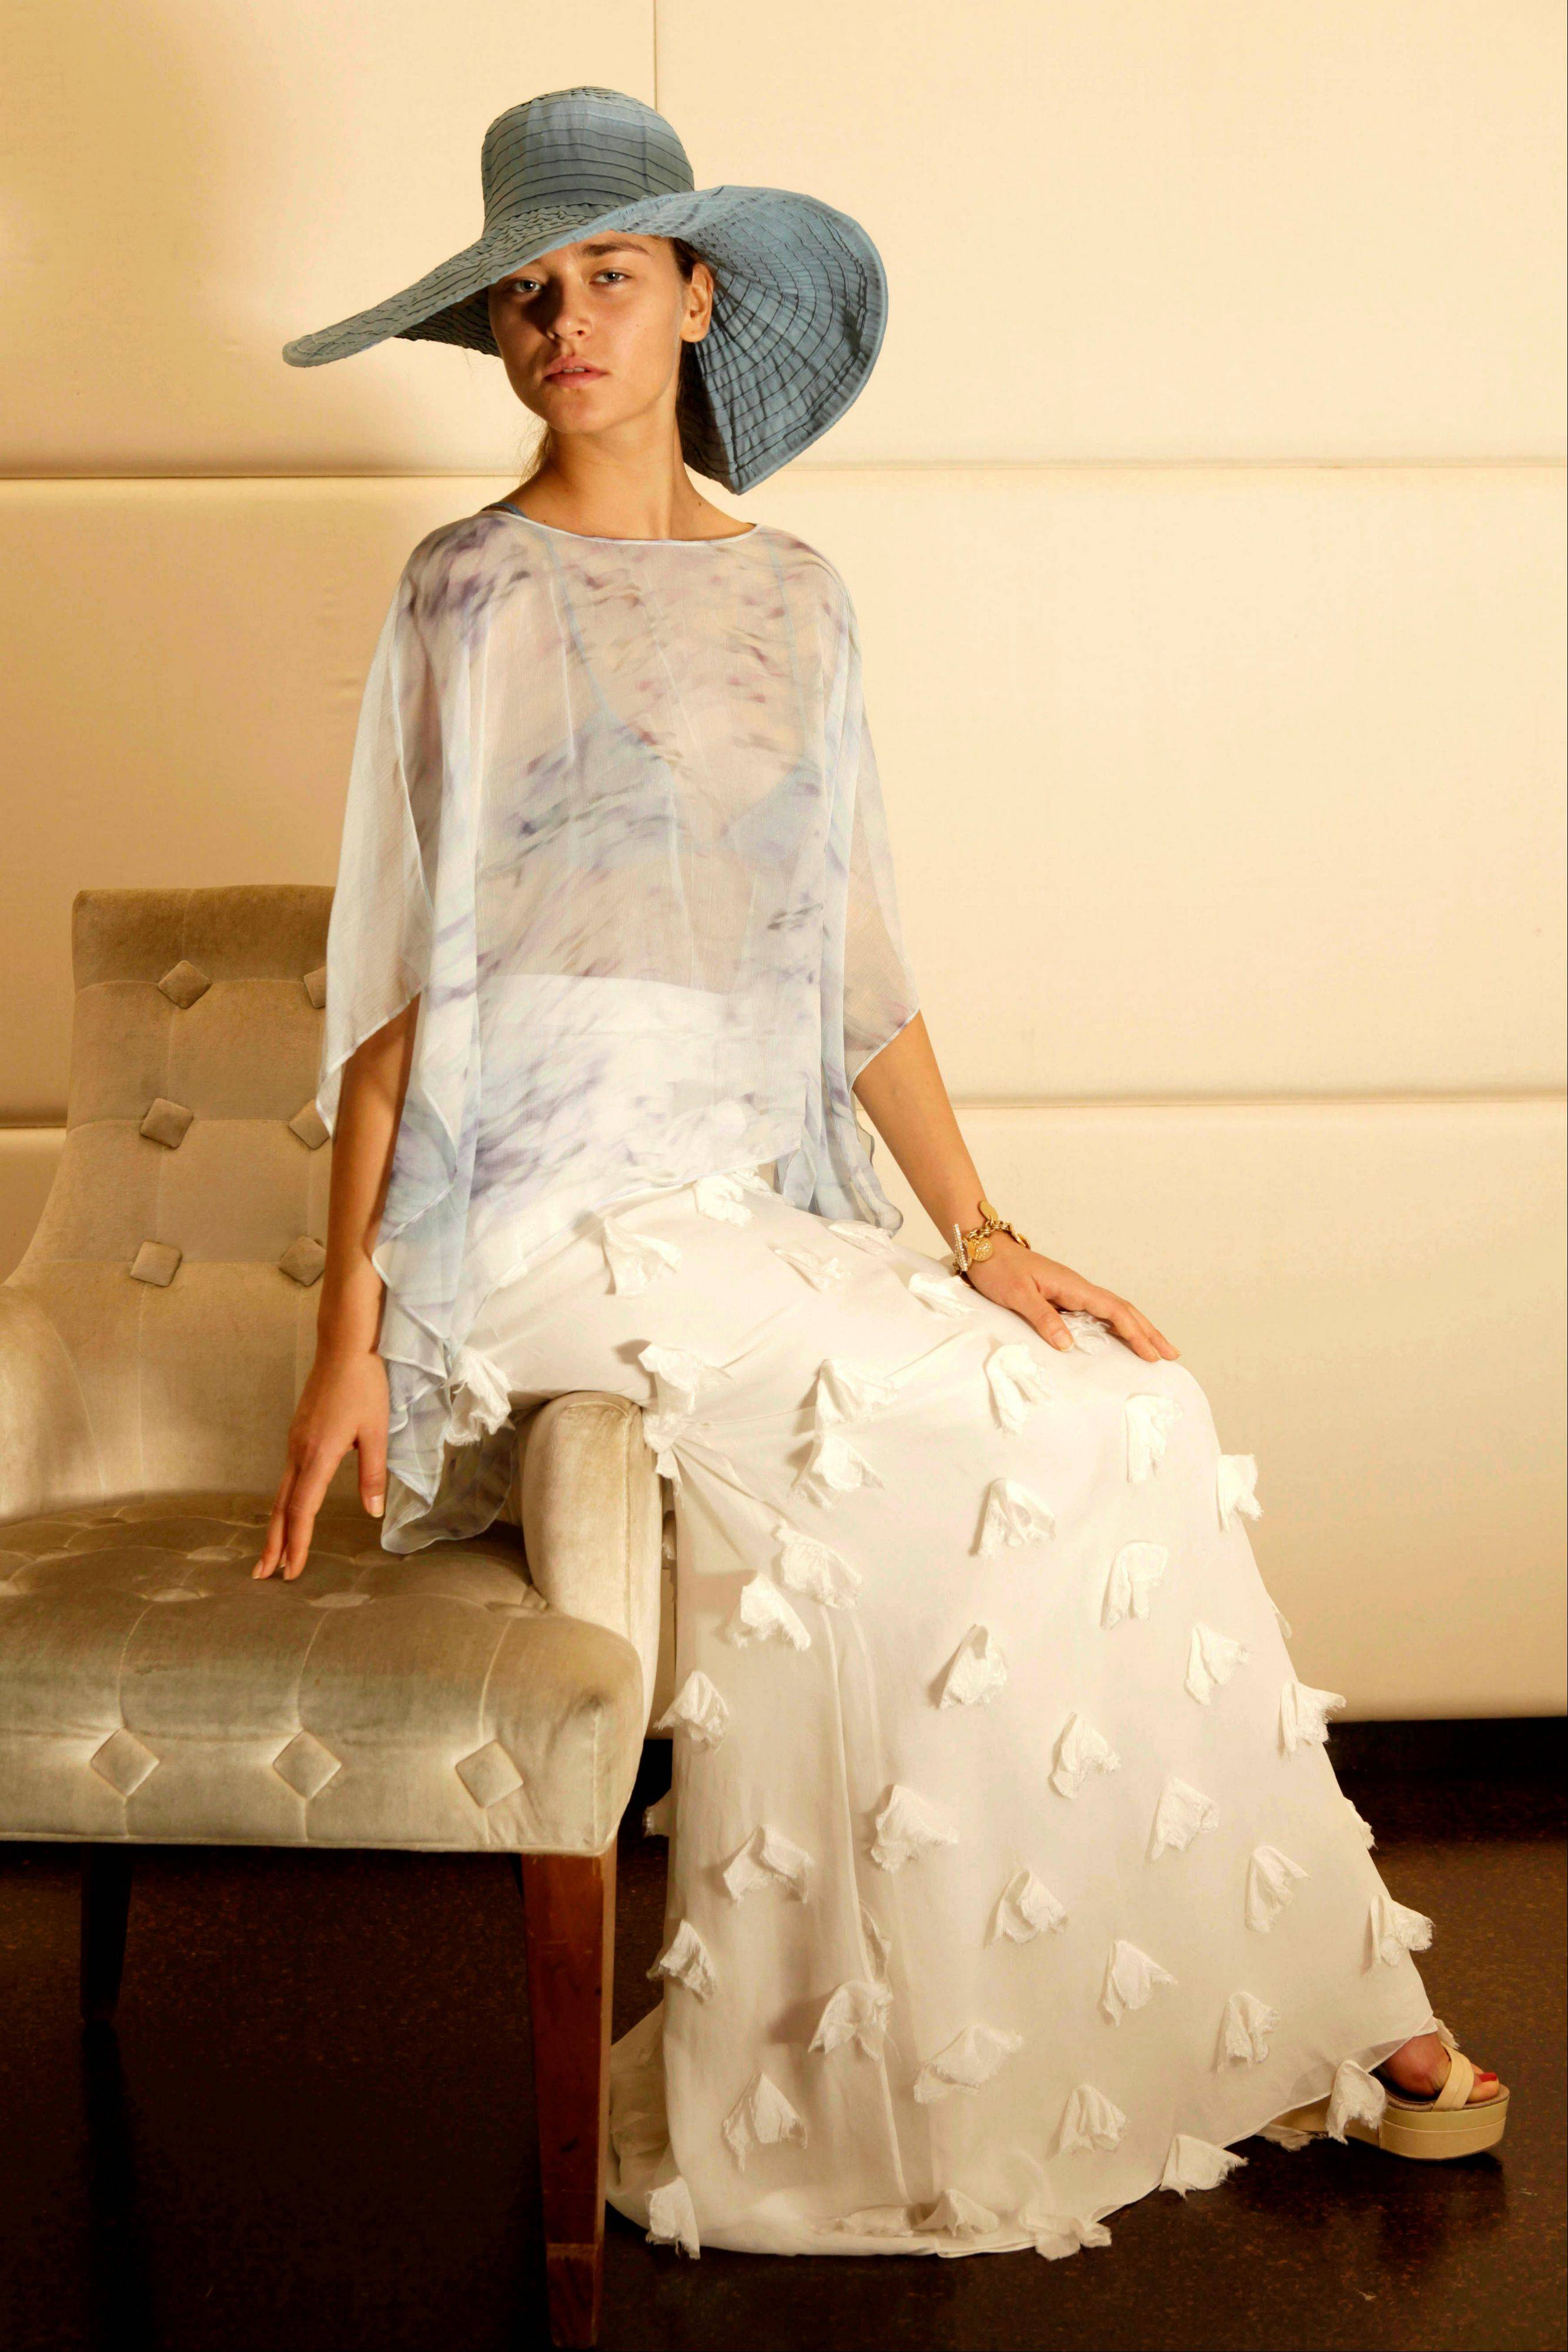 Model Sofija Ajder as she wears a design by Badgley Mischka at their studio in New York.